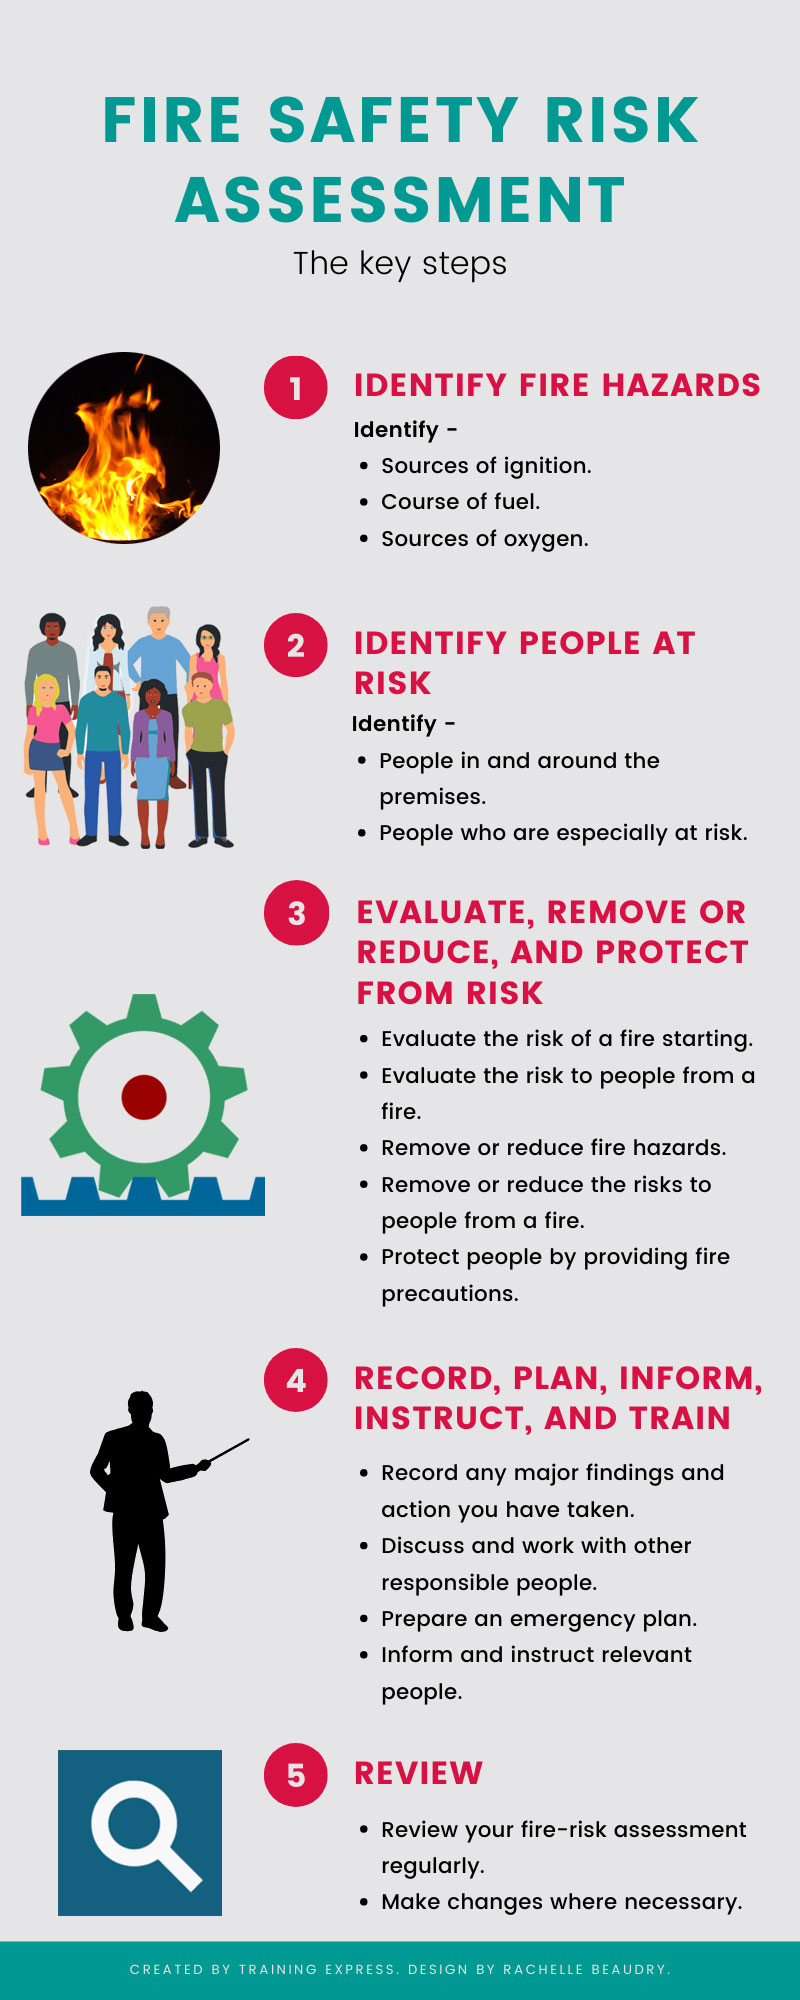 Key Steps for Fire Safety Risk Assessment